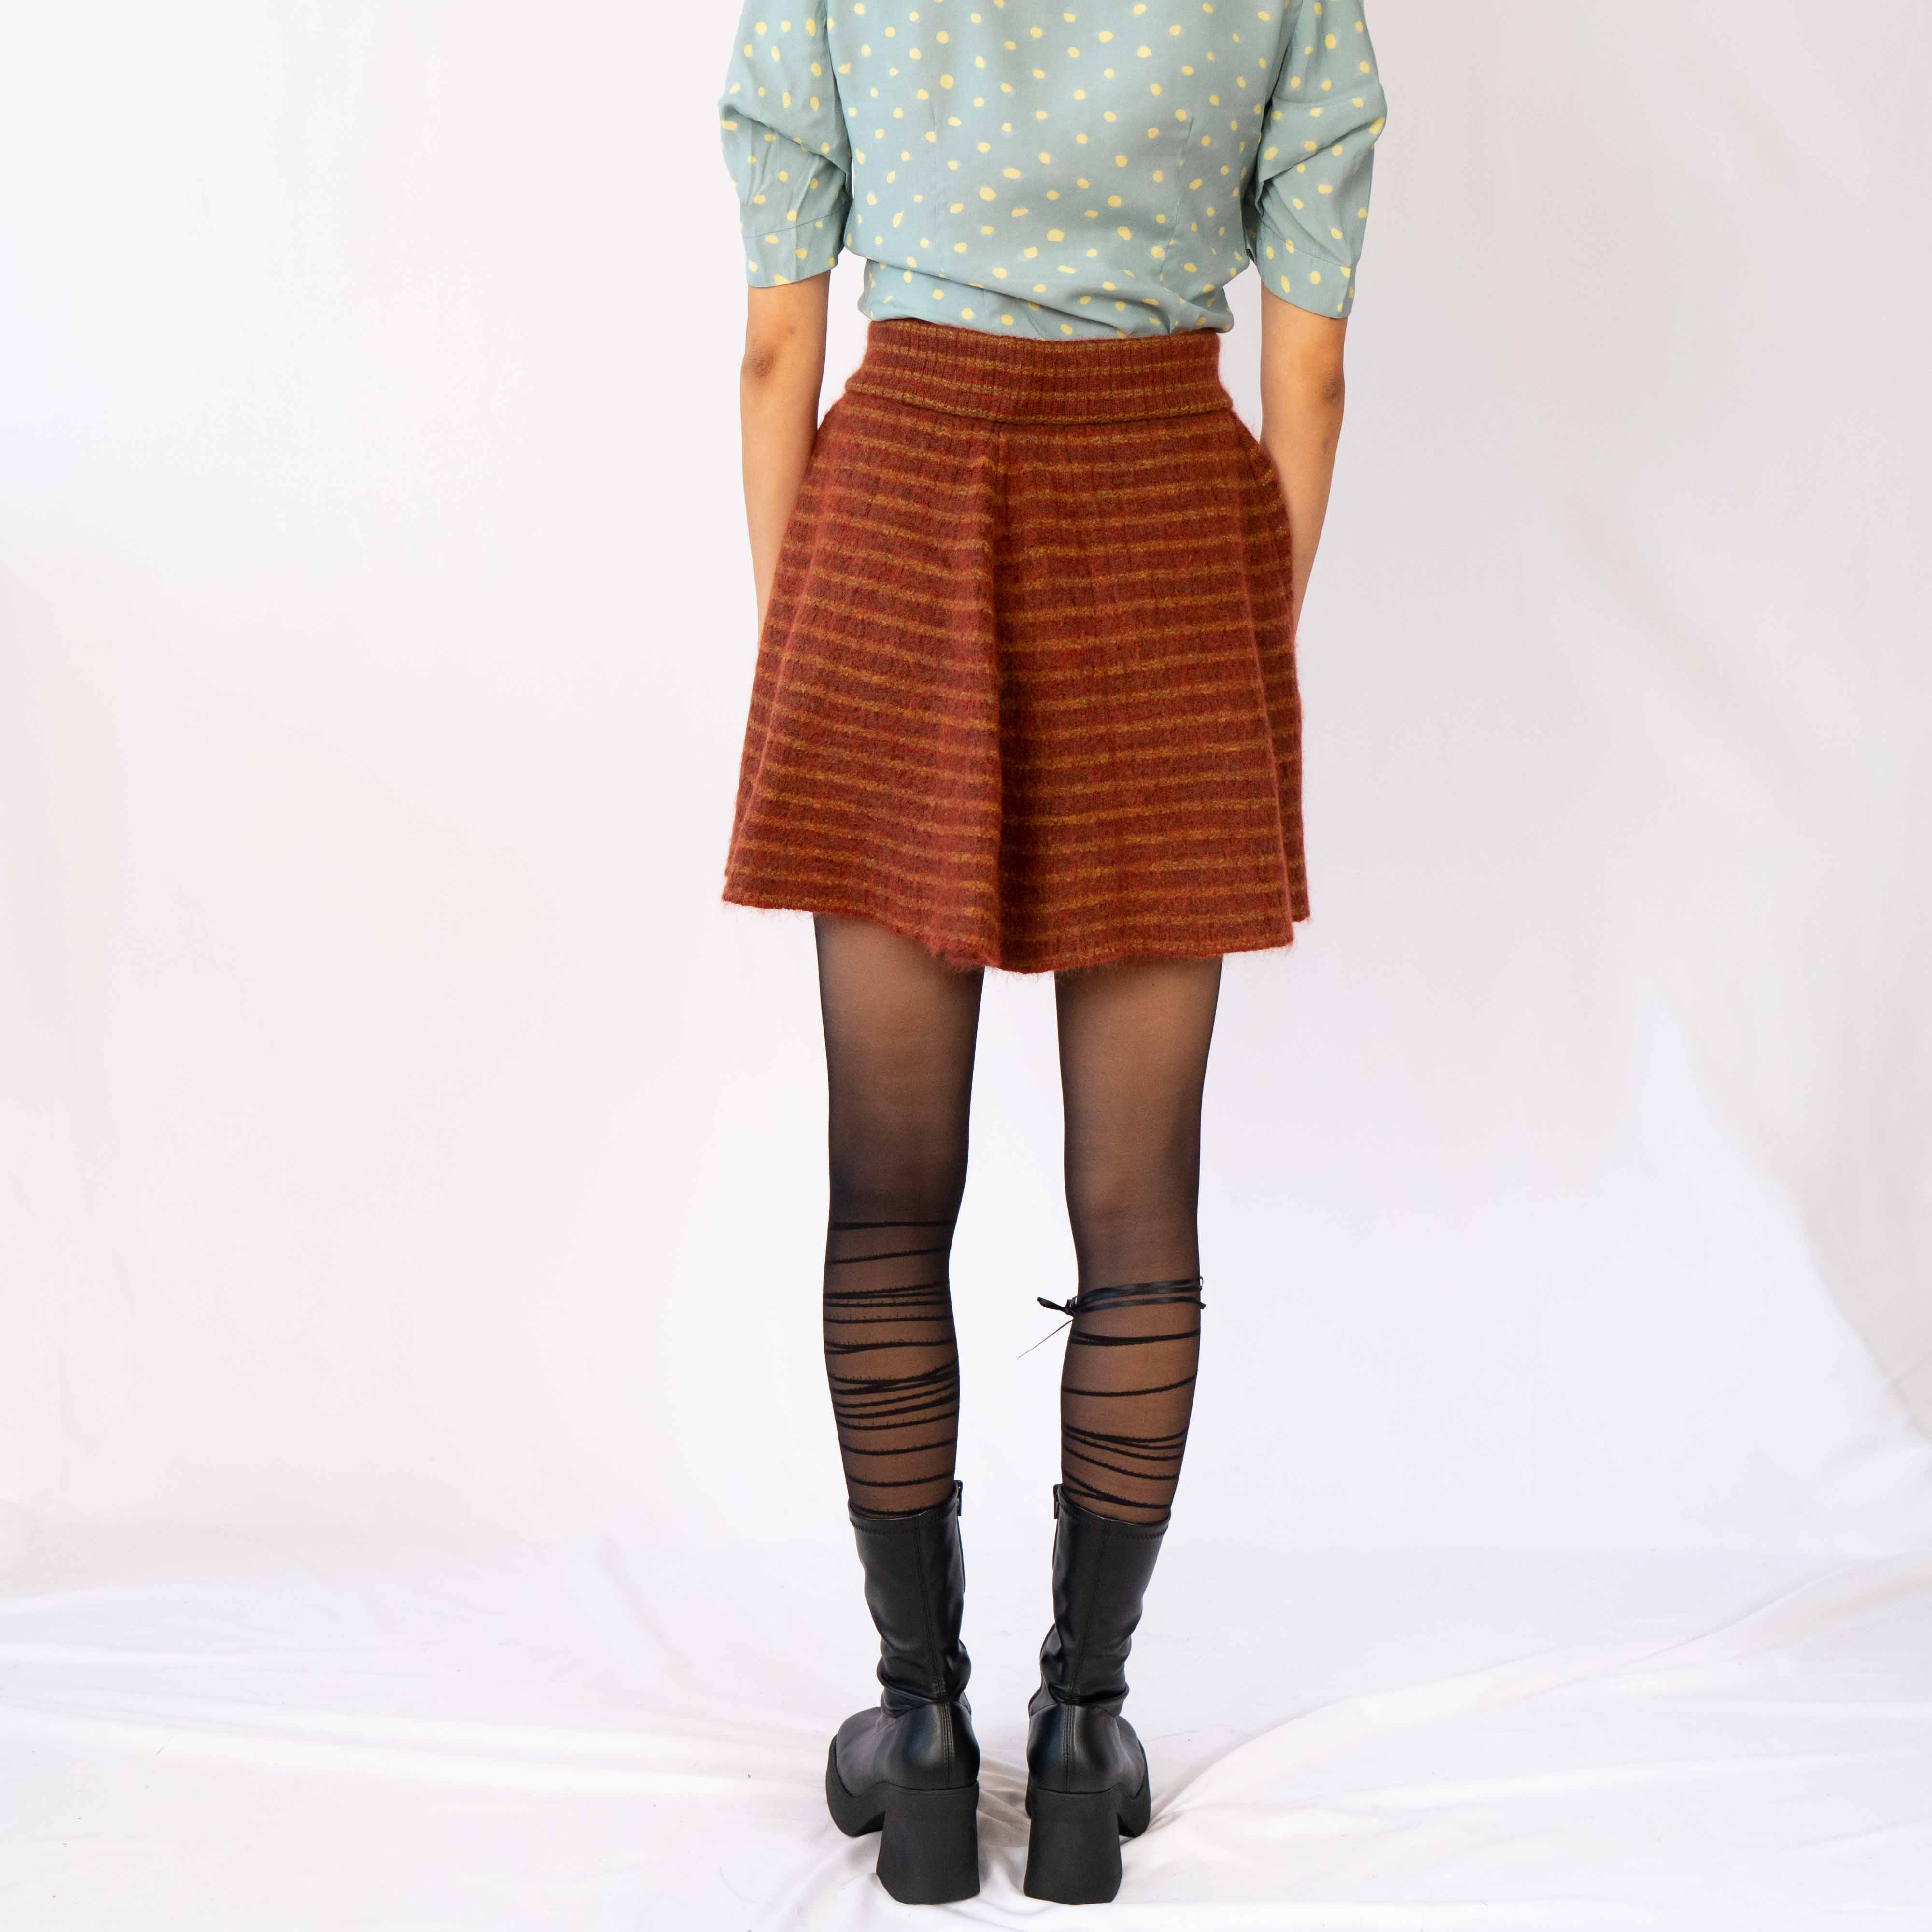 Nothing like fine wool for a chilly winter. This skirt will keep you warm while also keeping you fabulous.